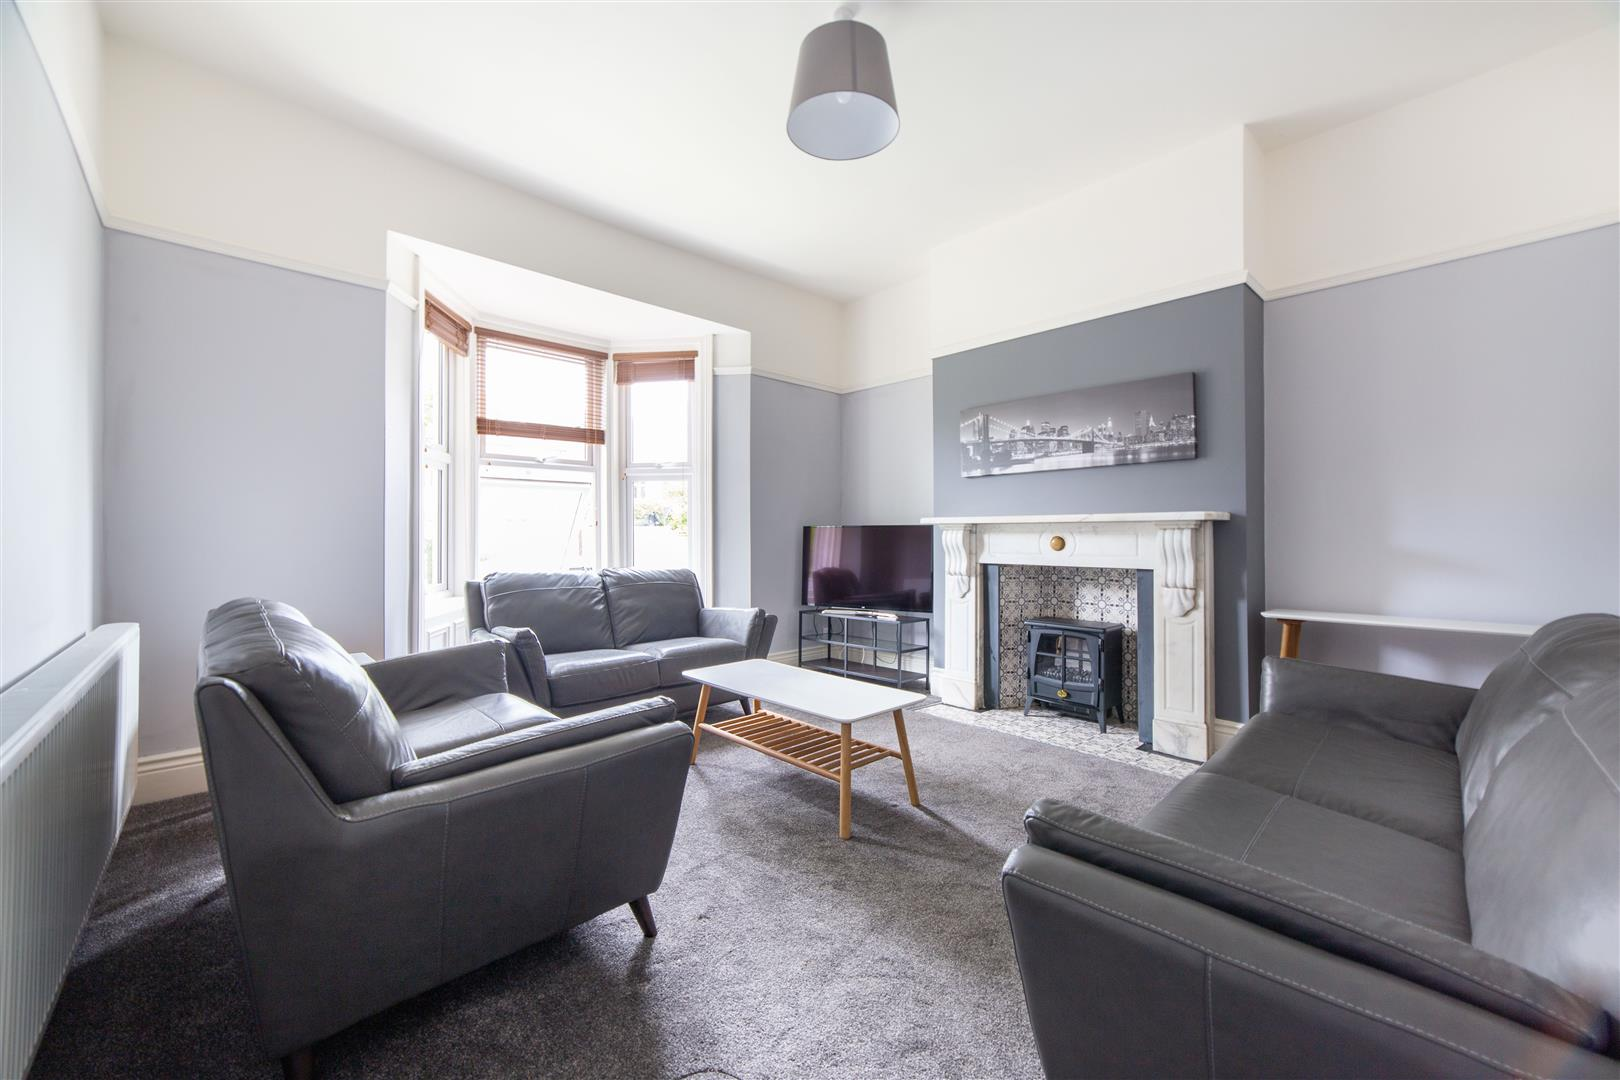 6 bed terraced house to rent in Newcastle Upon Tyne, NE2 2QA  - Property Image 1